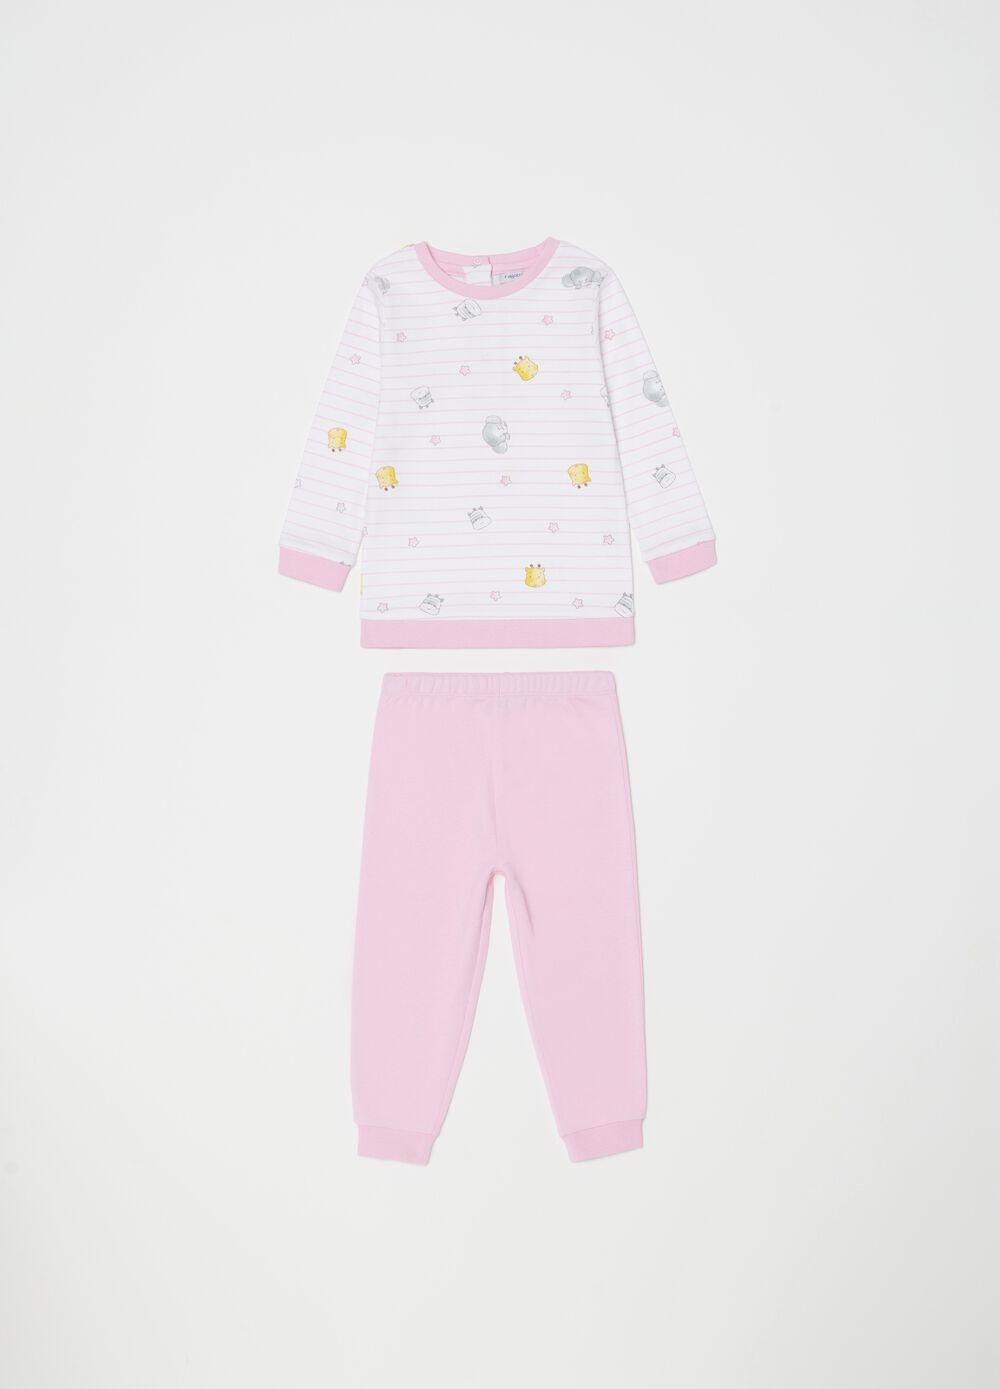 100% organic cotton pyjamas with pattern